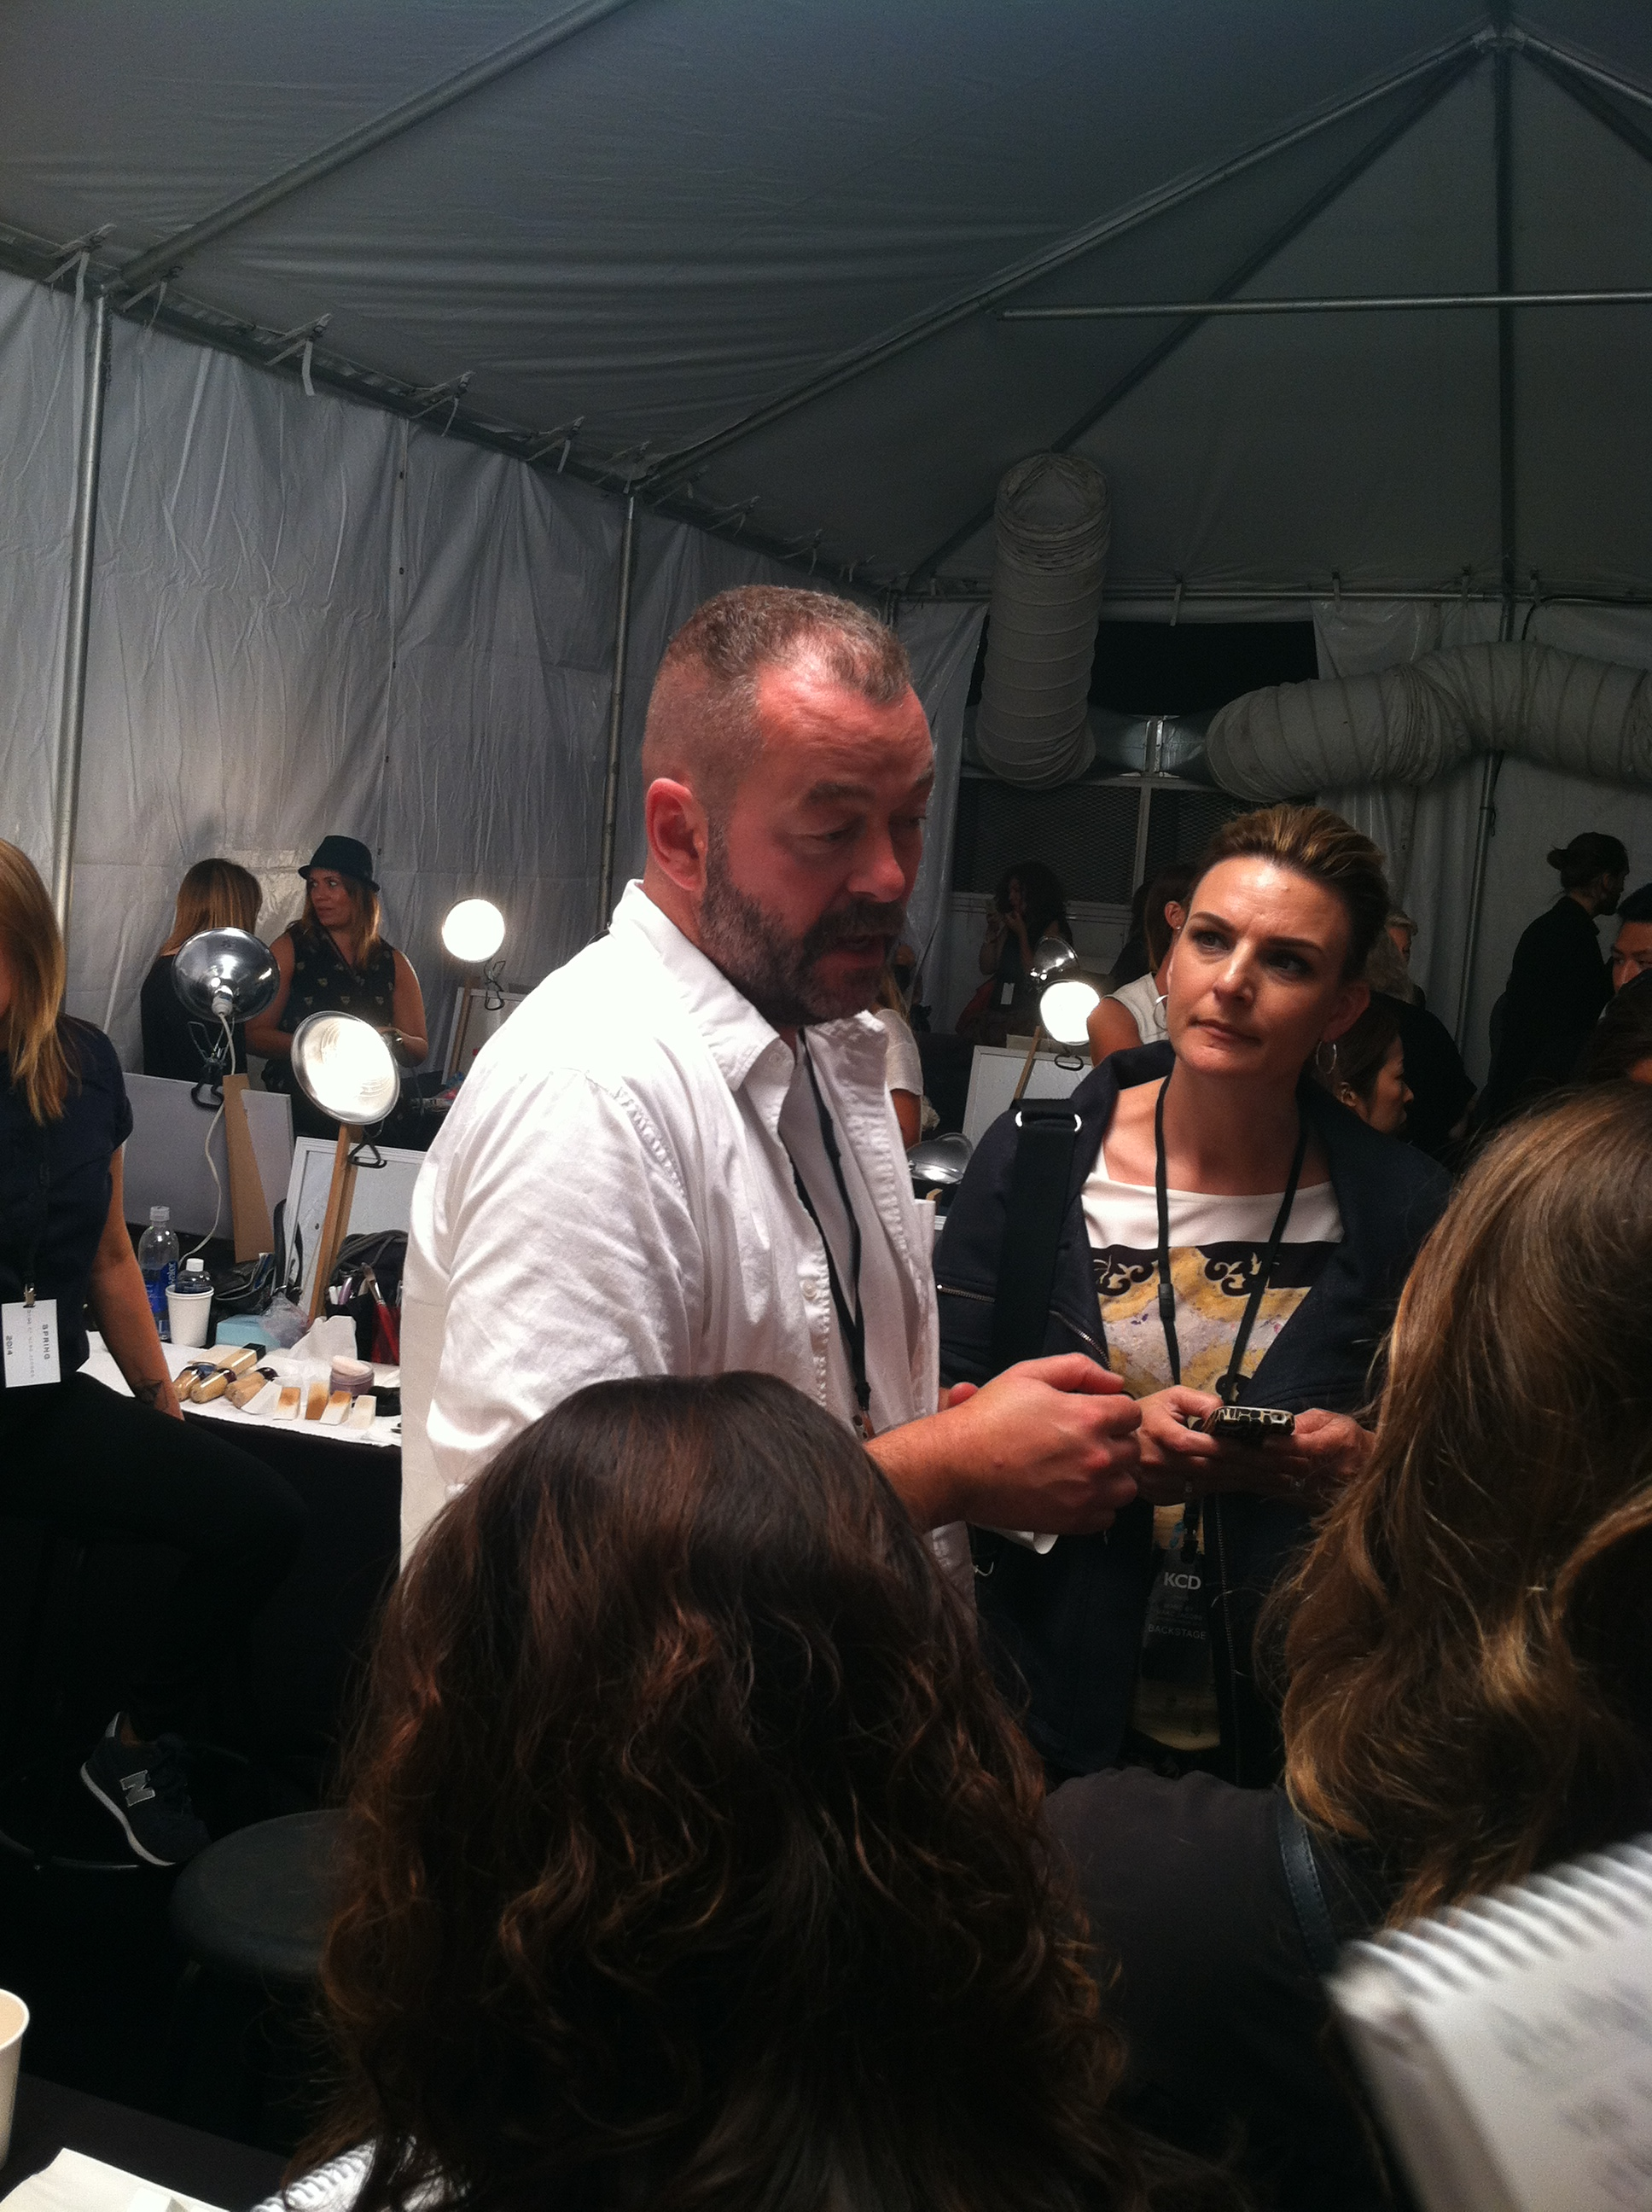 Shiseido Artistic Director Dick Page explaining the makeup look